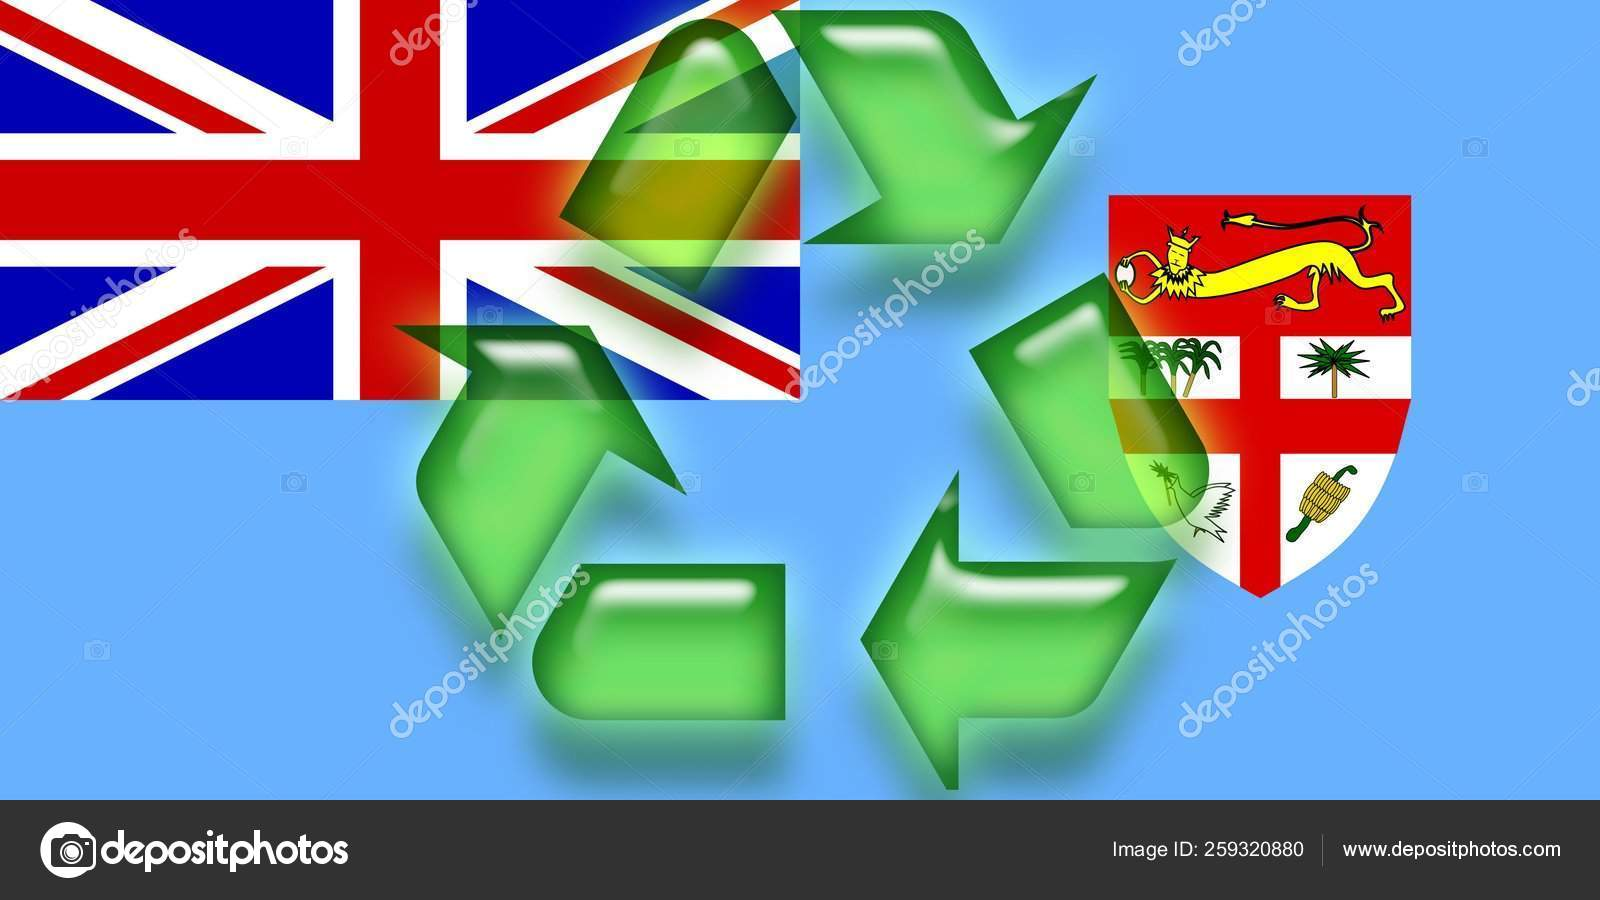 Flag Fiji National Country Symbol Illustration Eco Recycling